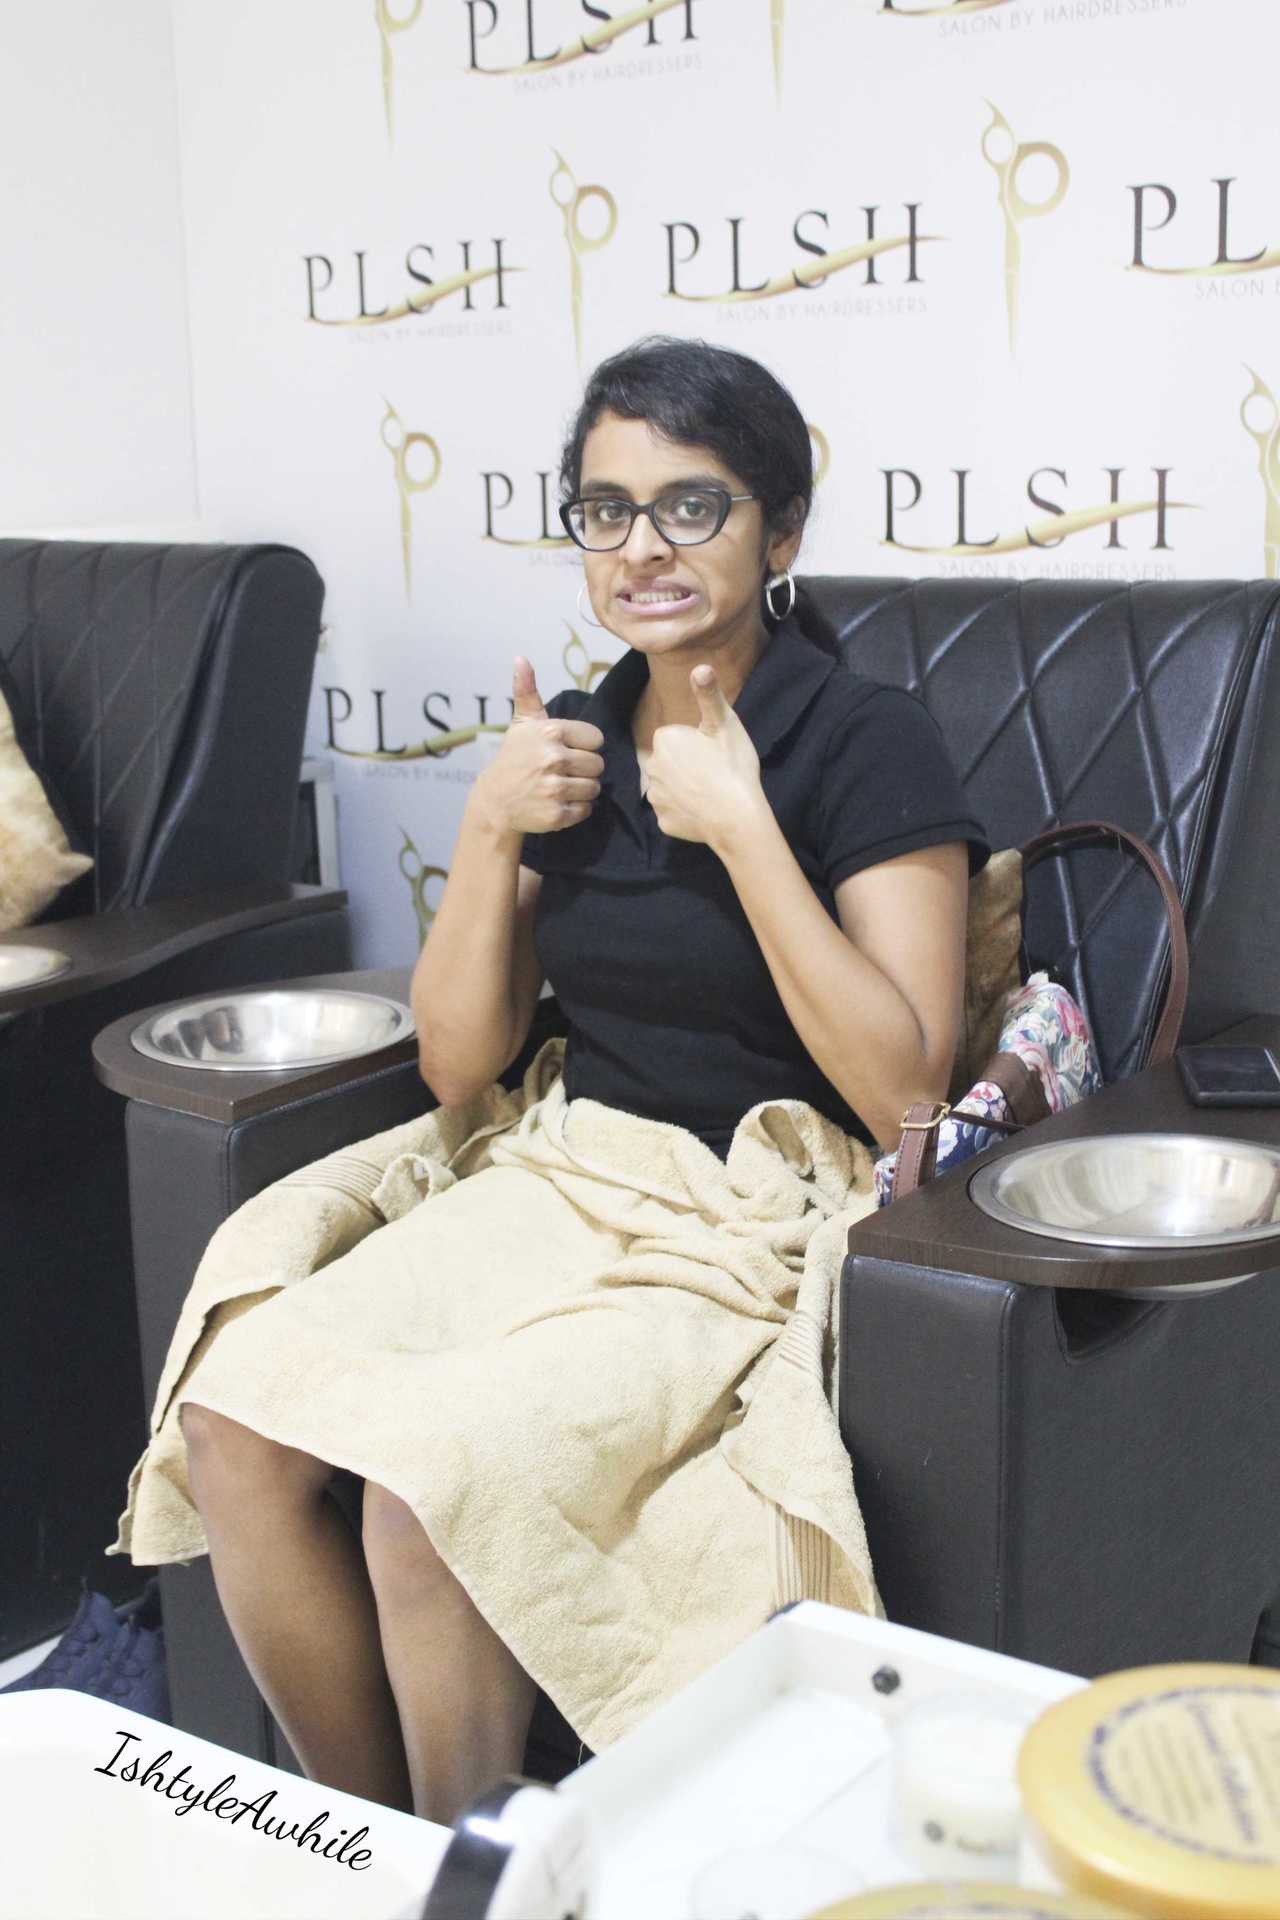 IshtyleAwhile - A Chennai based Indian Fashion Blog - salon in chennai plsh salon review chennai beauty blogger